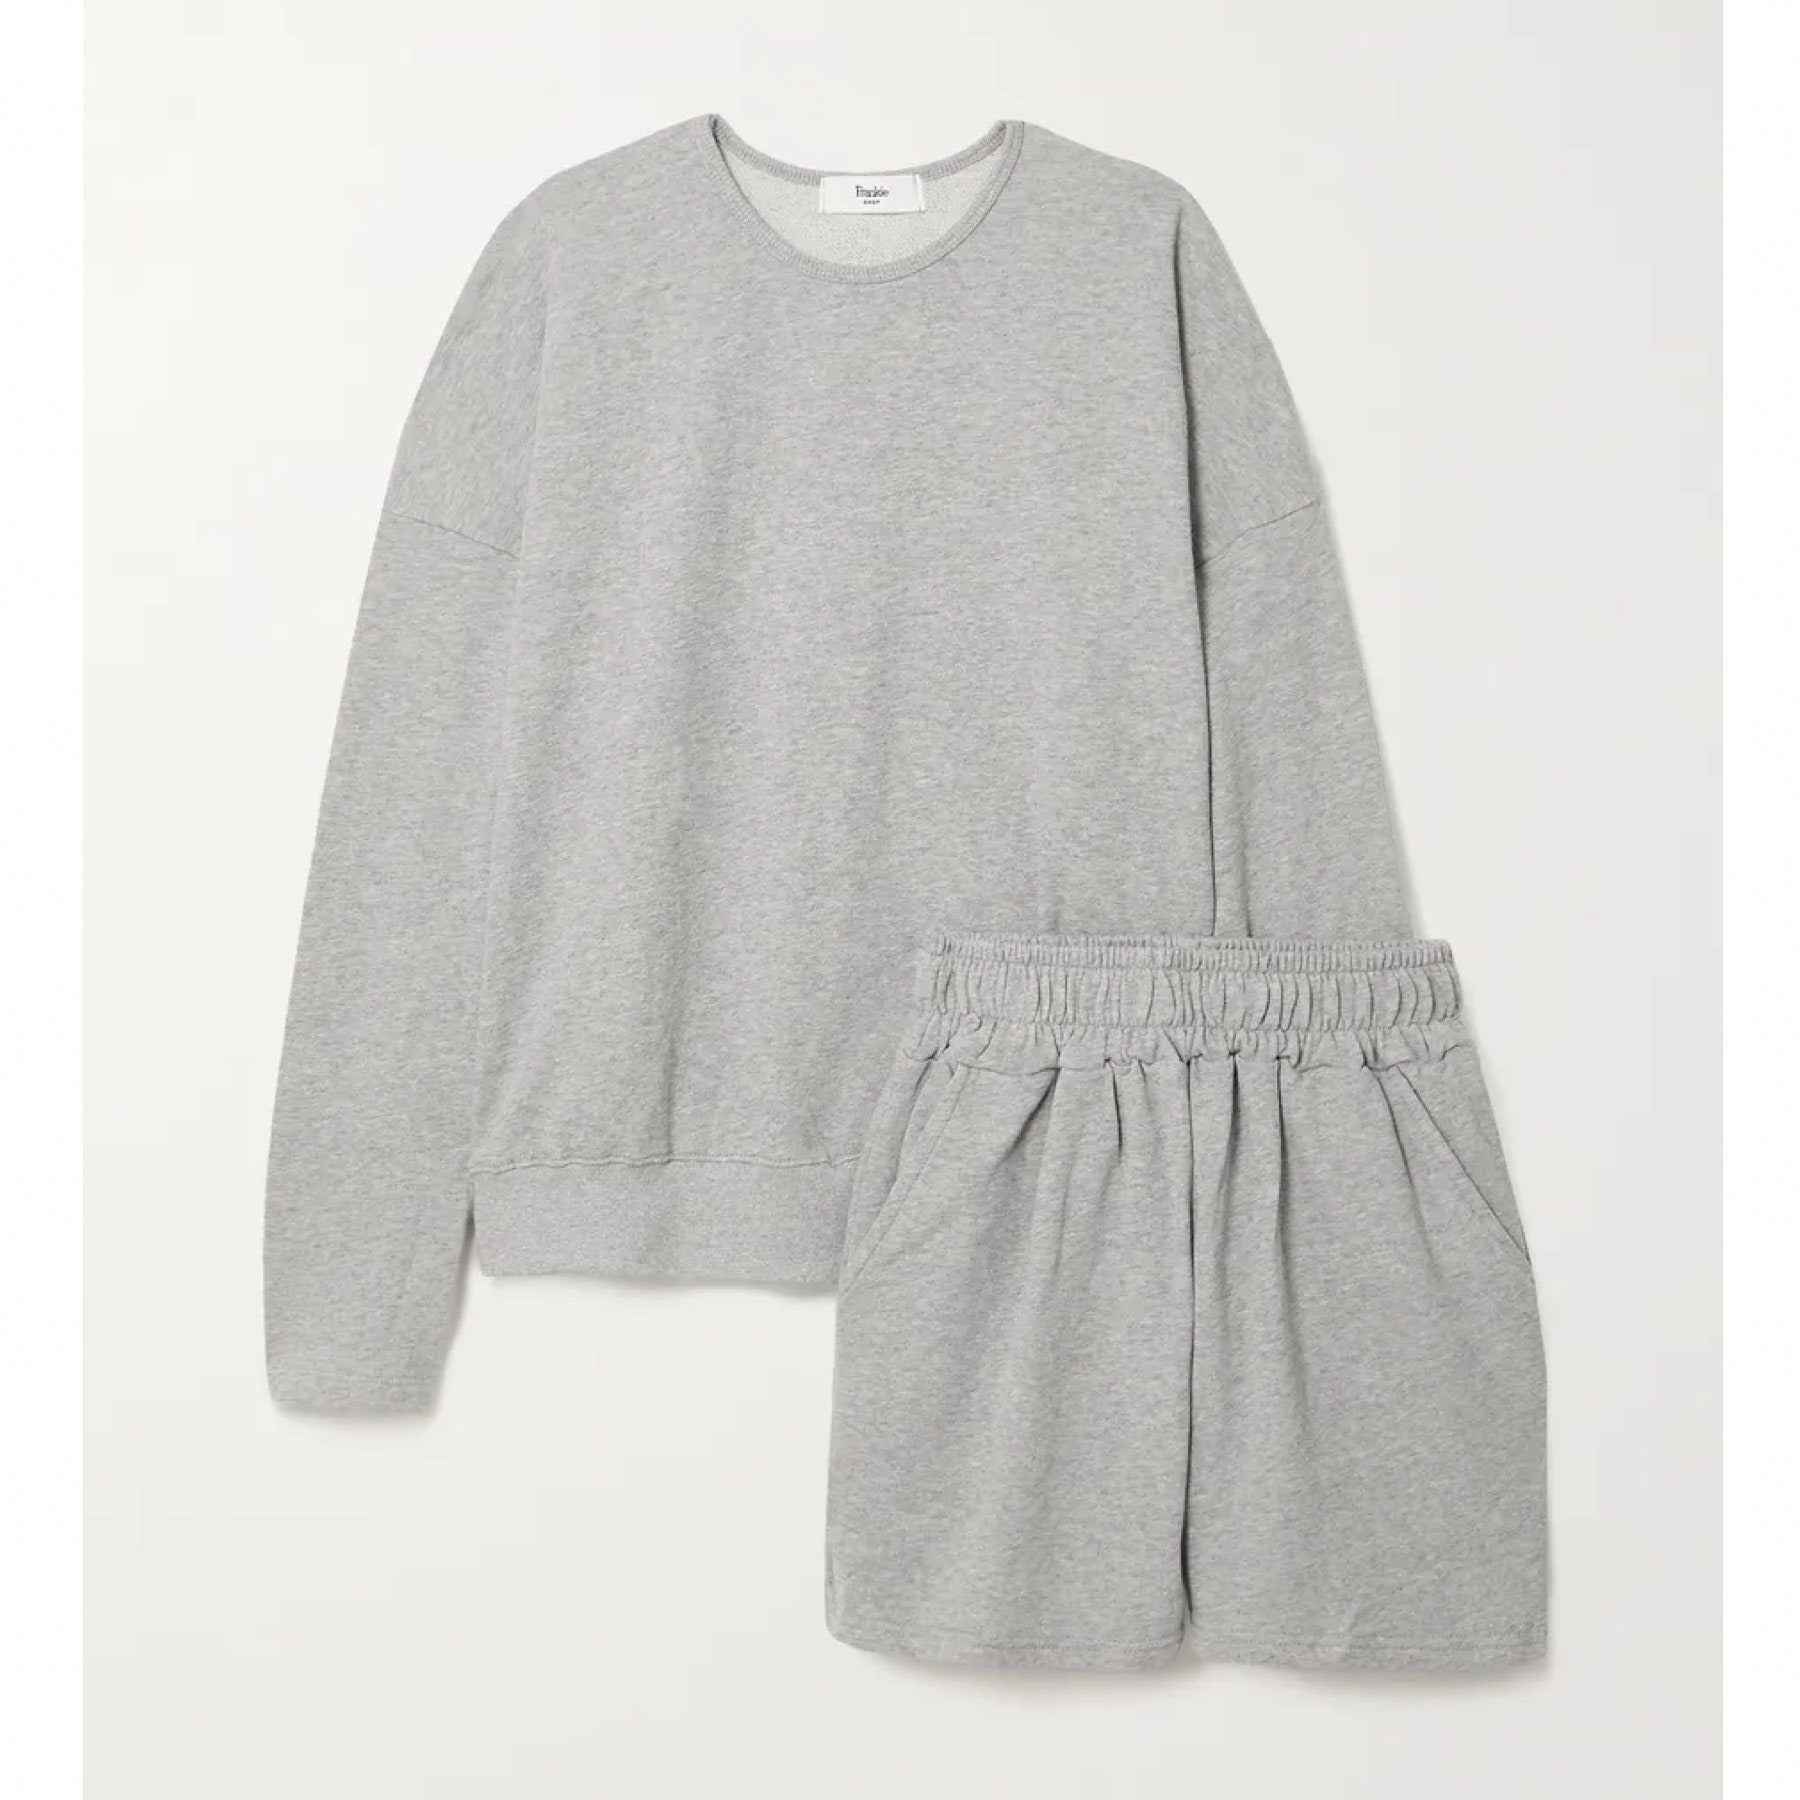 grey sweatshirt and matching shorts set